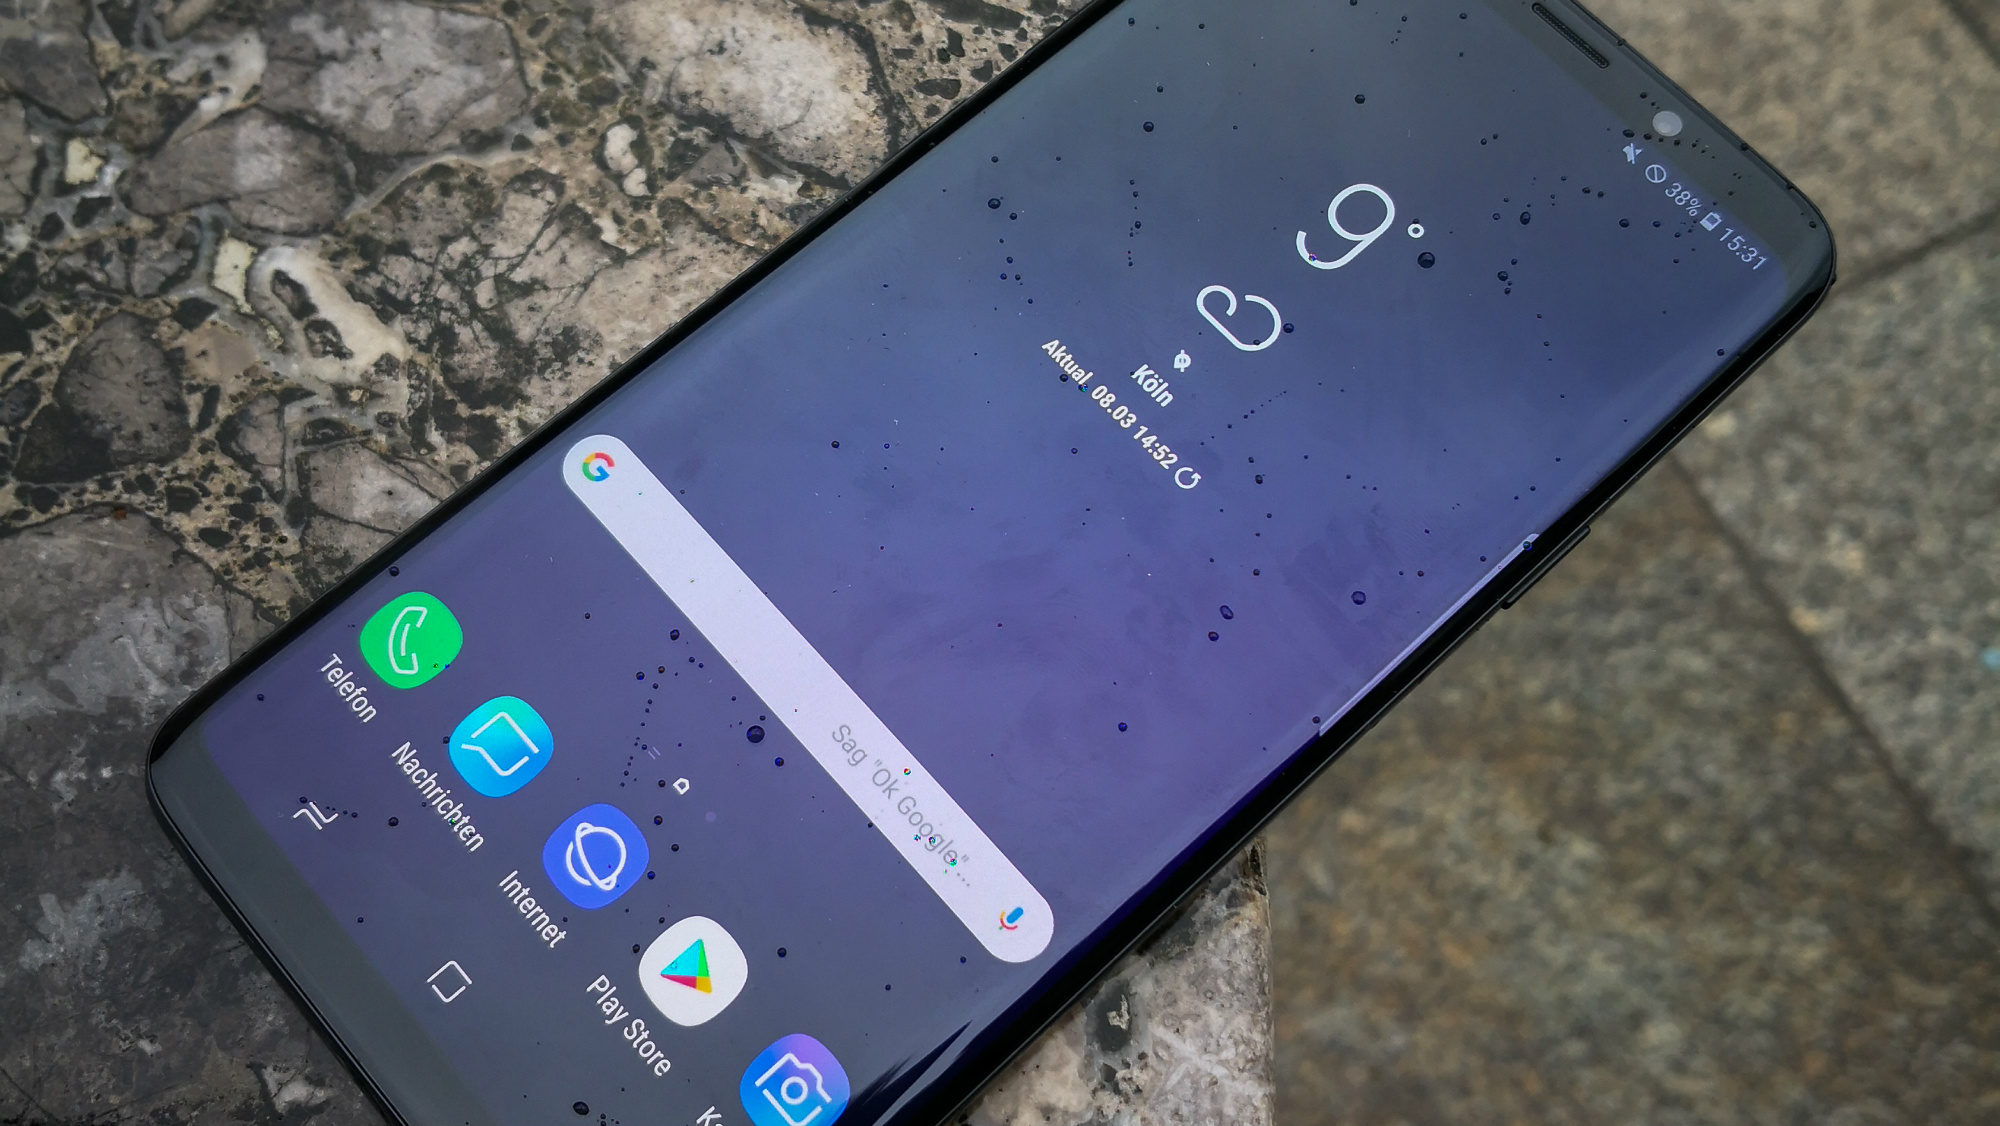 TIPS FOR SAMSUNG S9